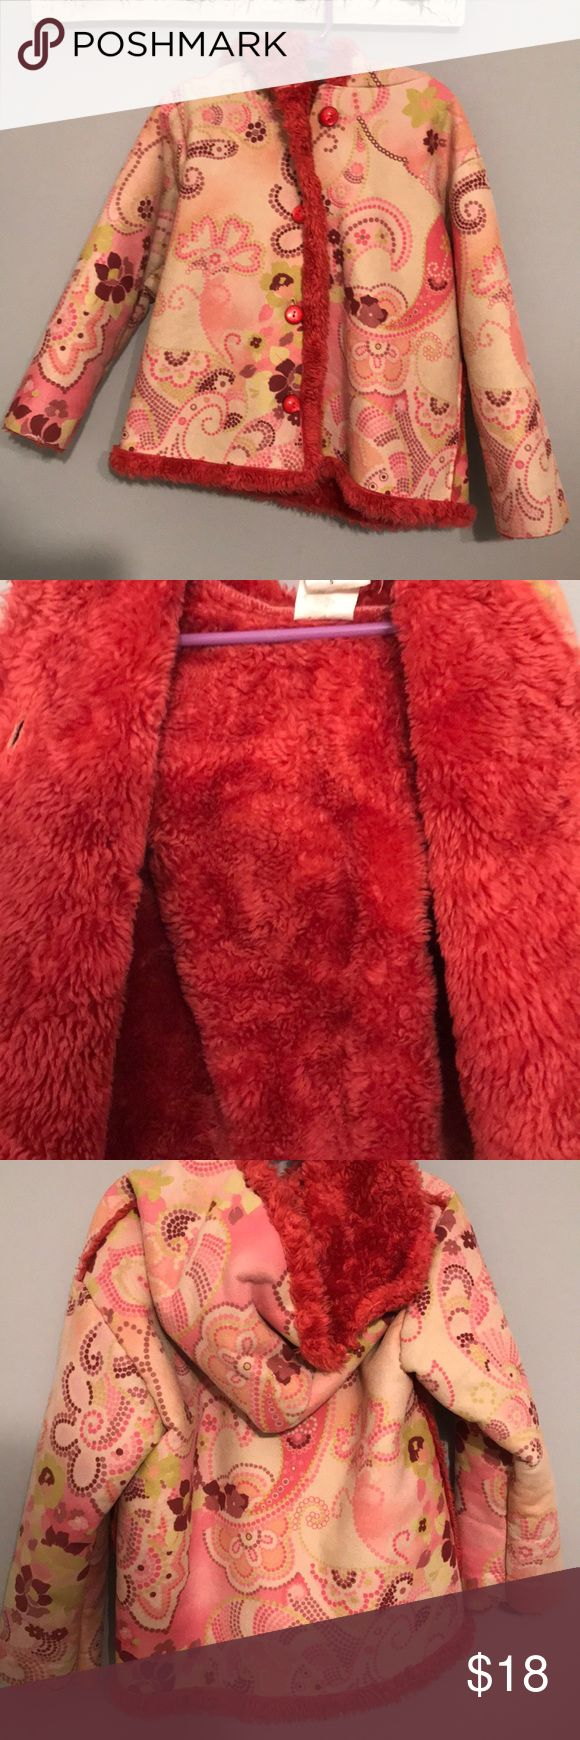 Mulberry Bush Pink Floral Shaggy Coat Mulberribush Pink Floral Shaggy Swing Coat Jacket. The inside hot pink fuzzy lining that feels so good. It has oversized dome pink buttons down the front Mulberry Jackets & Coats